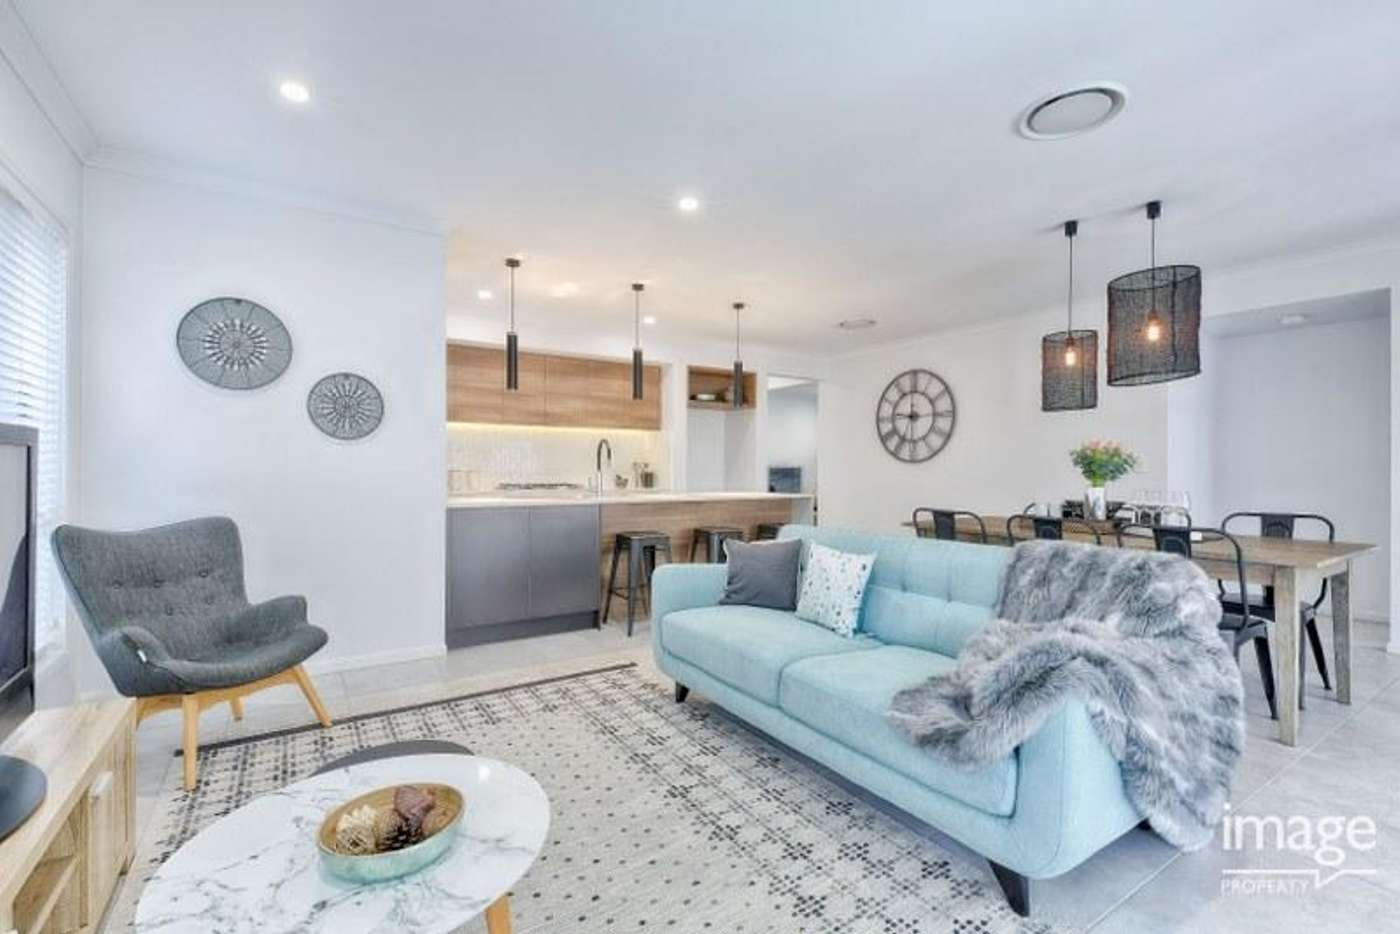 Main view of Homely house listing, 6 Shilin Street, Yarrabilba QLD 4207